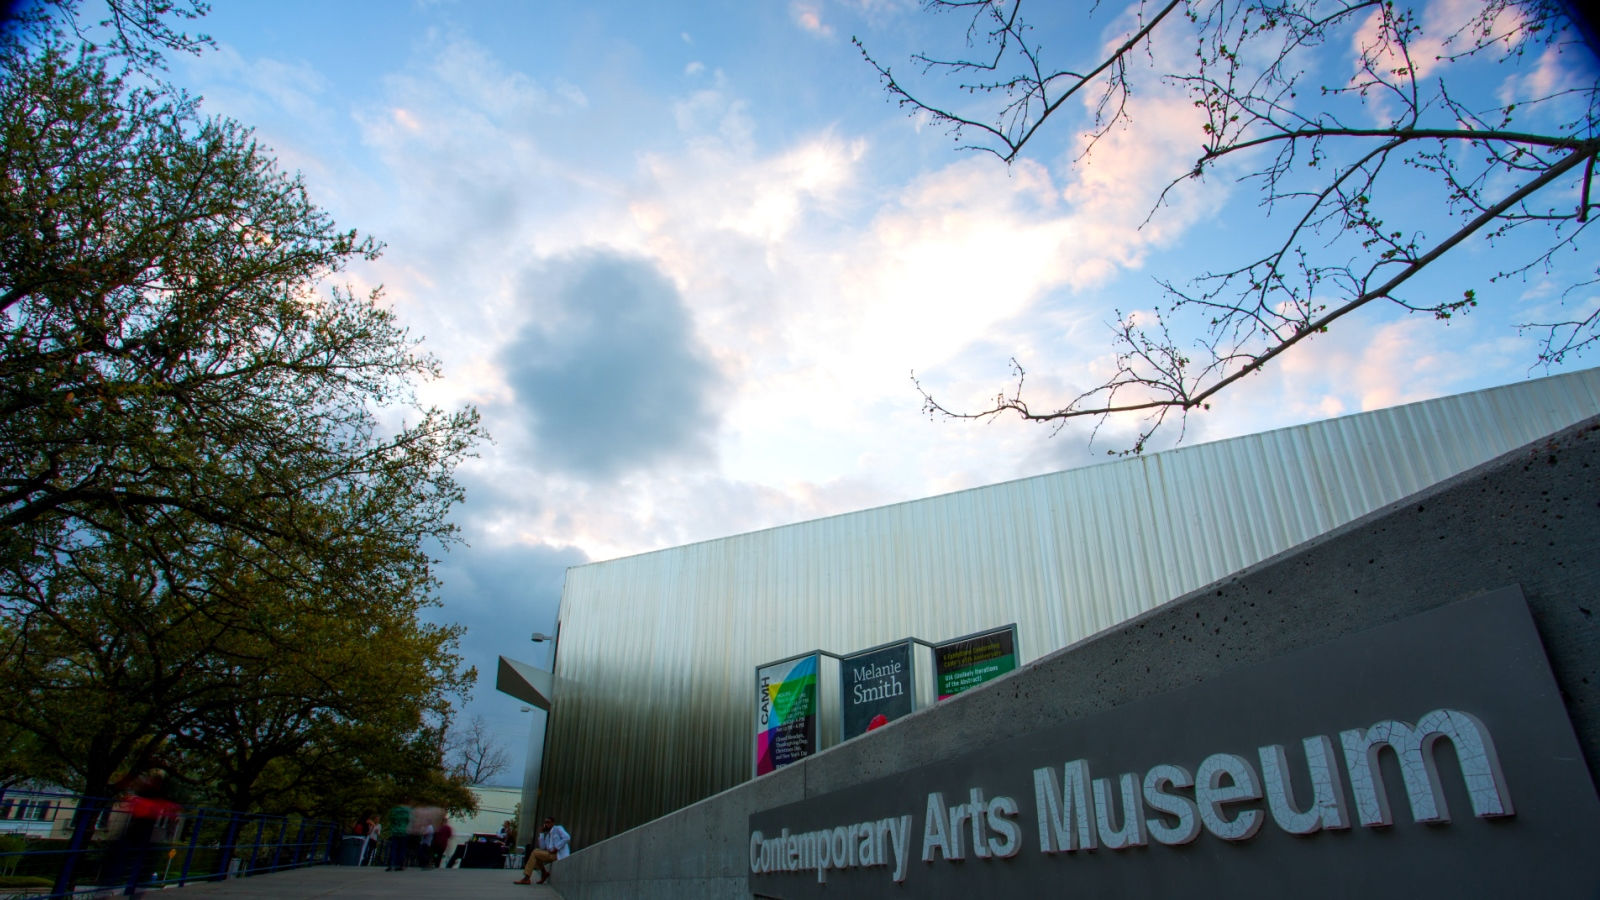 Contemporary Arts Museum Houston - Image Provided by VisitHouston.com